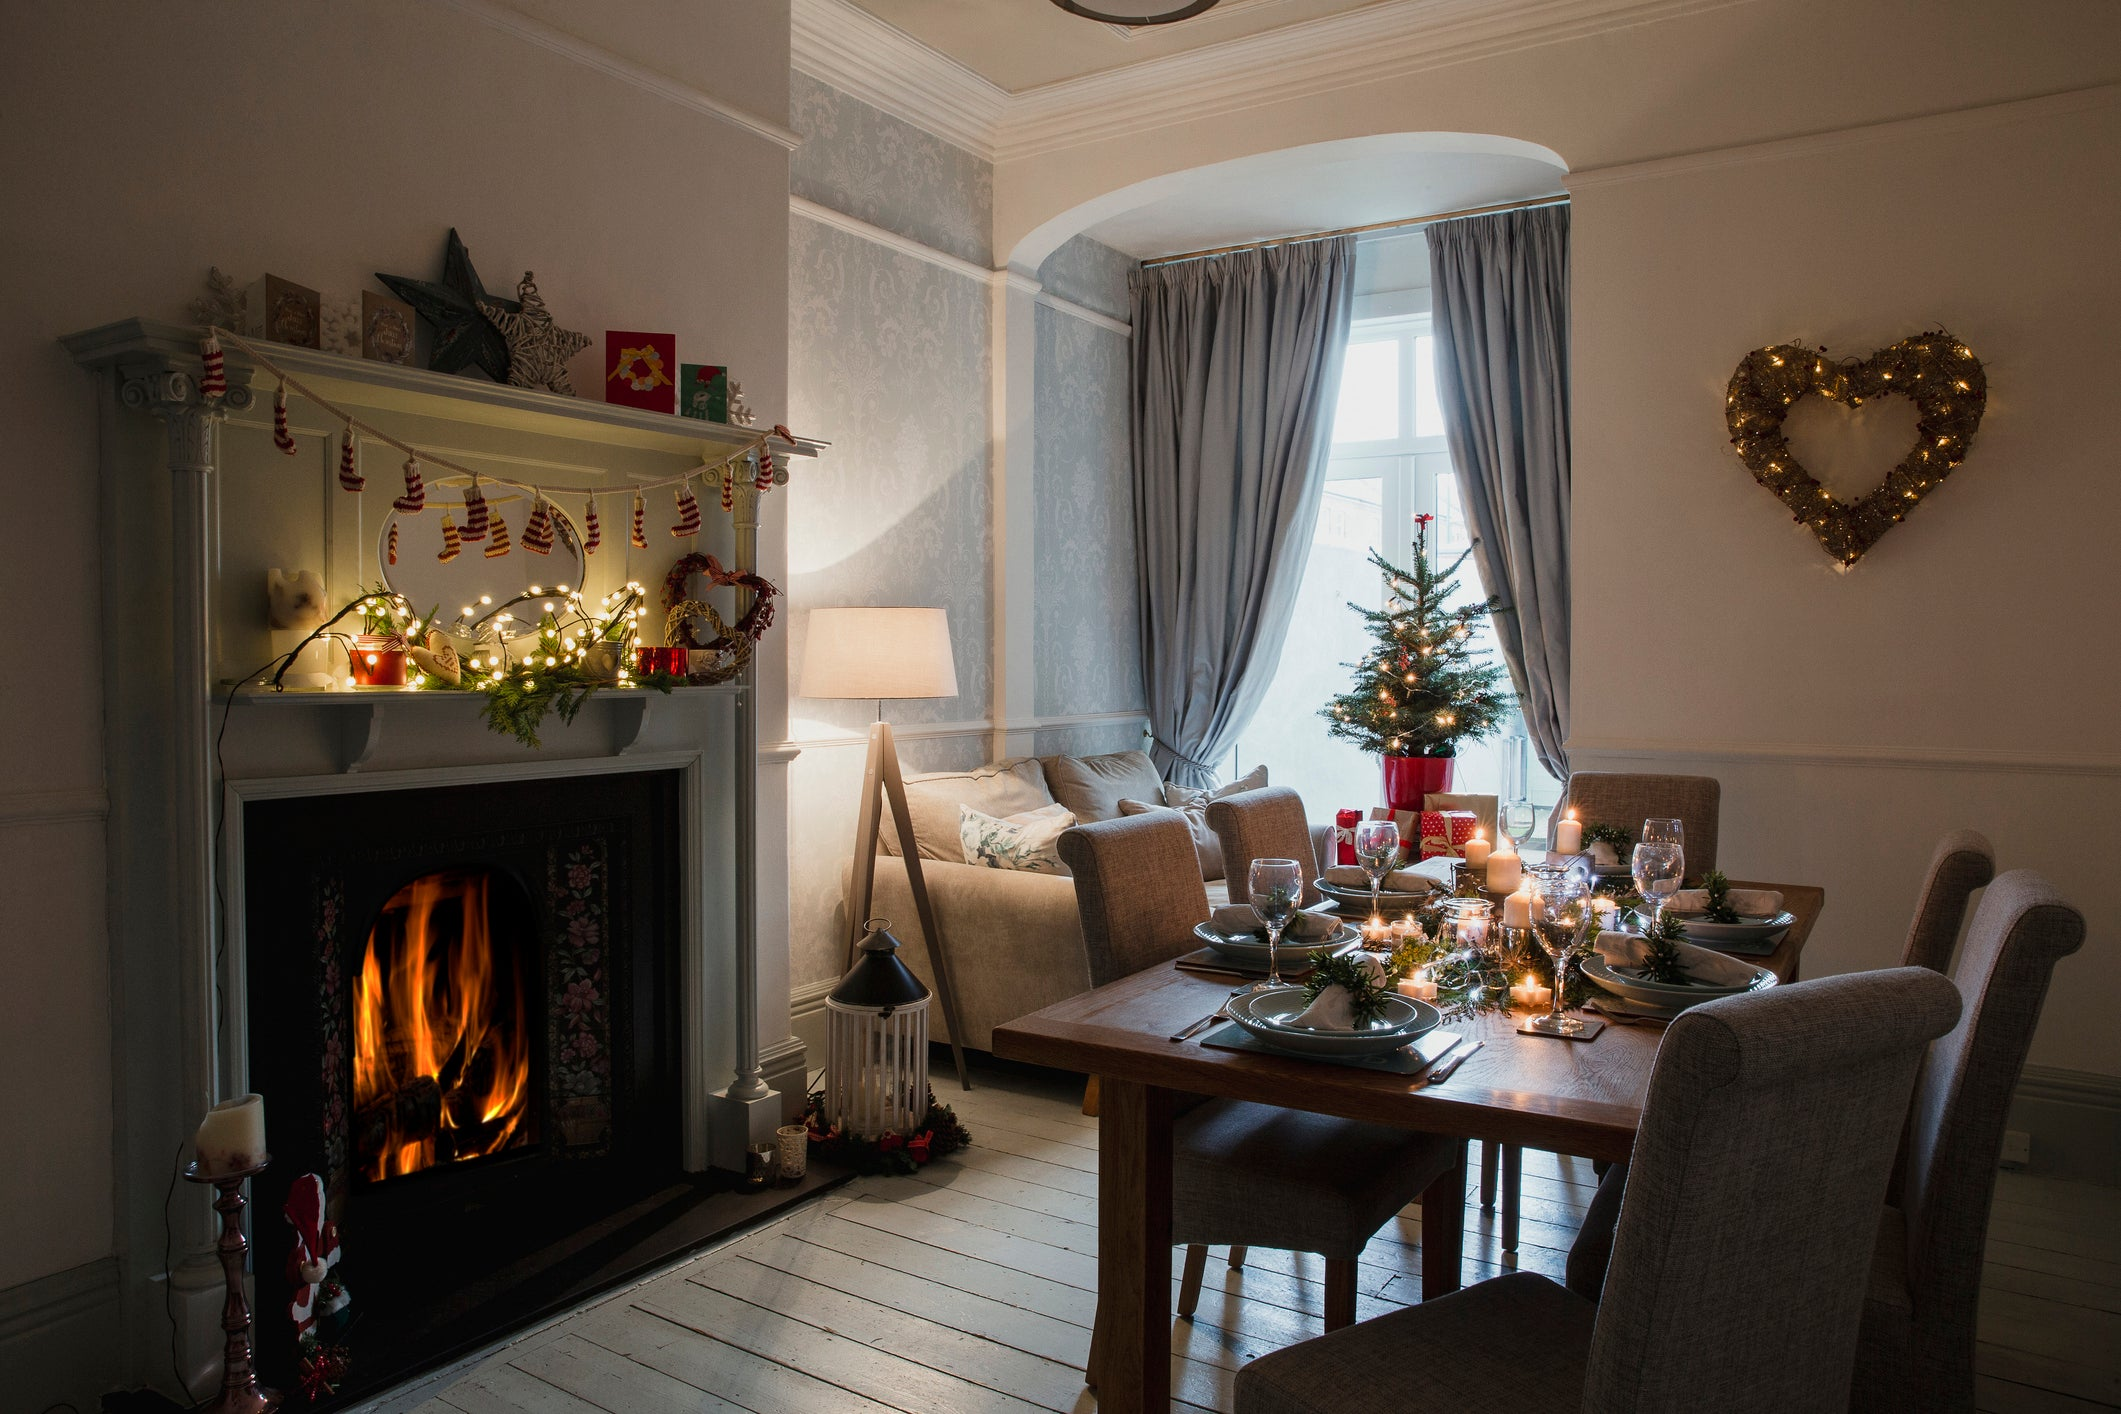 Very festive and cosy dining room with sofa under the window